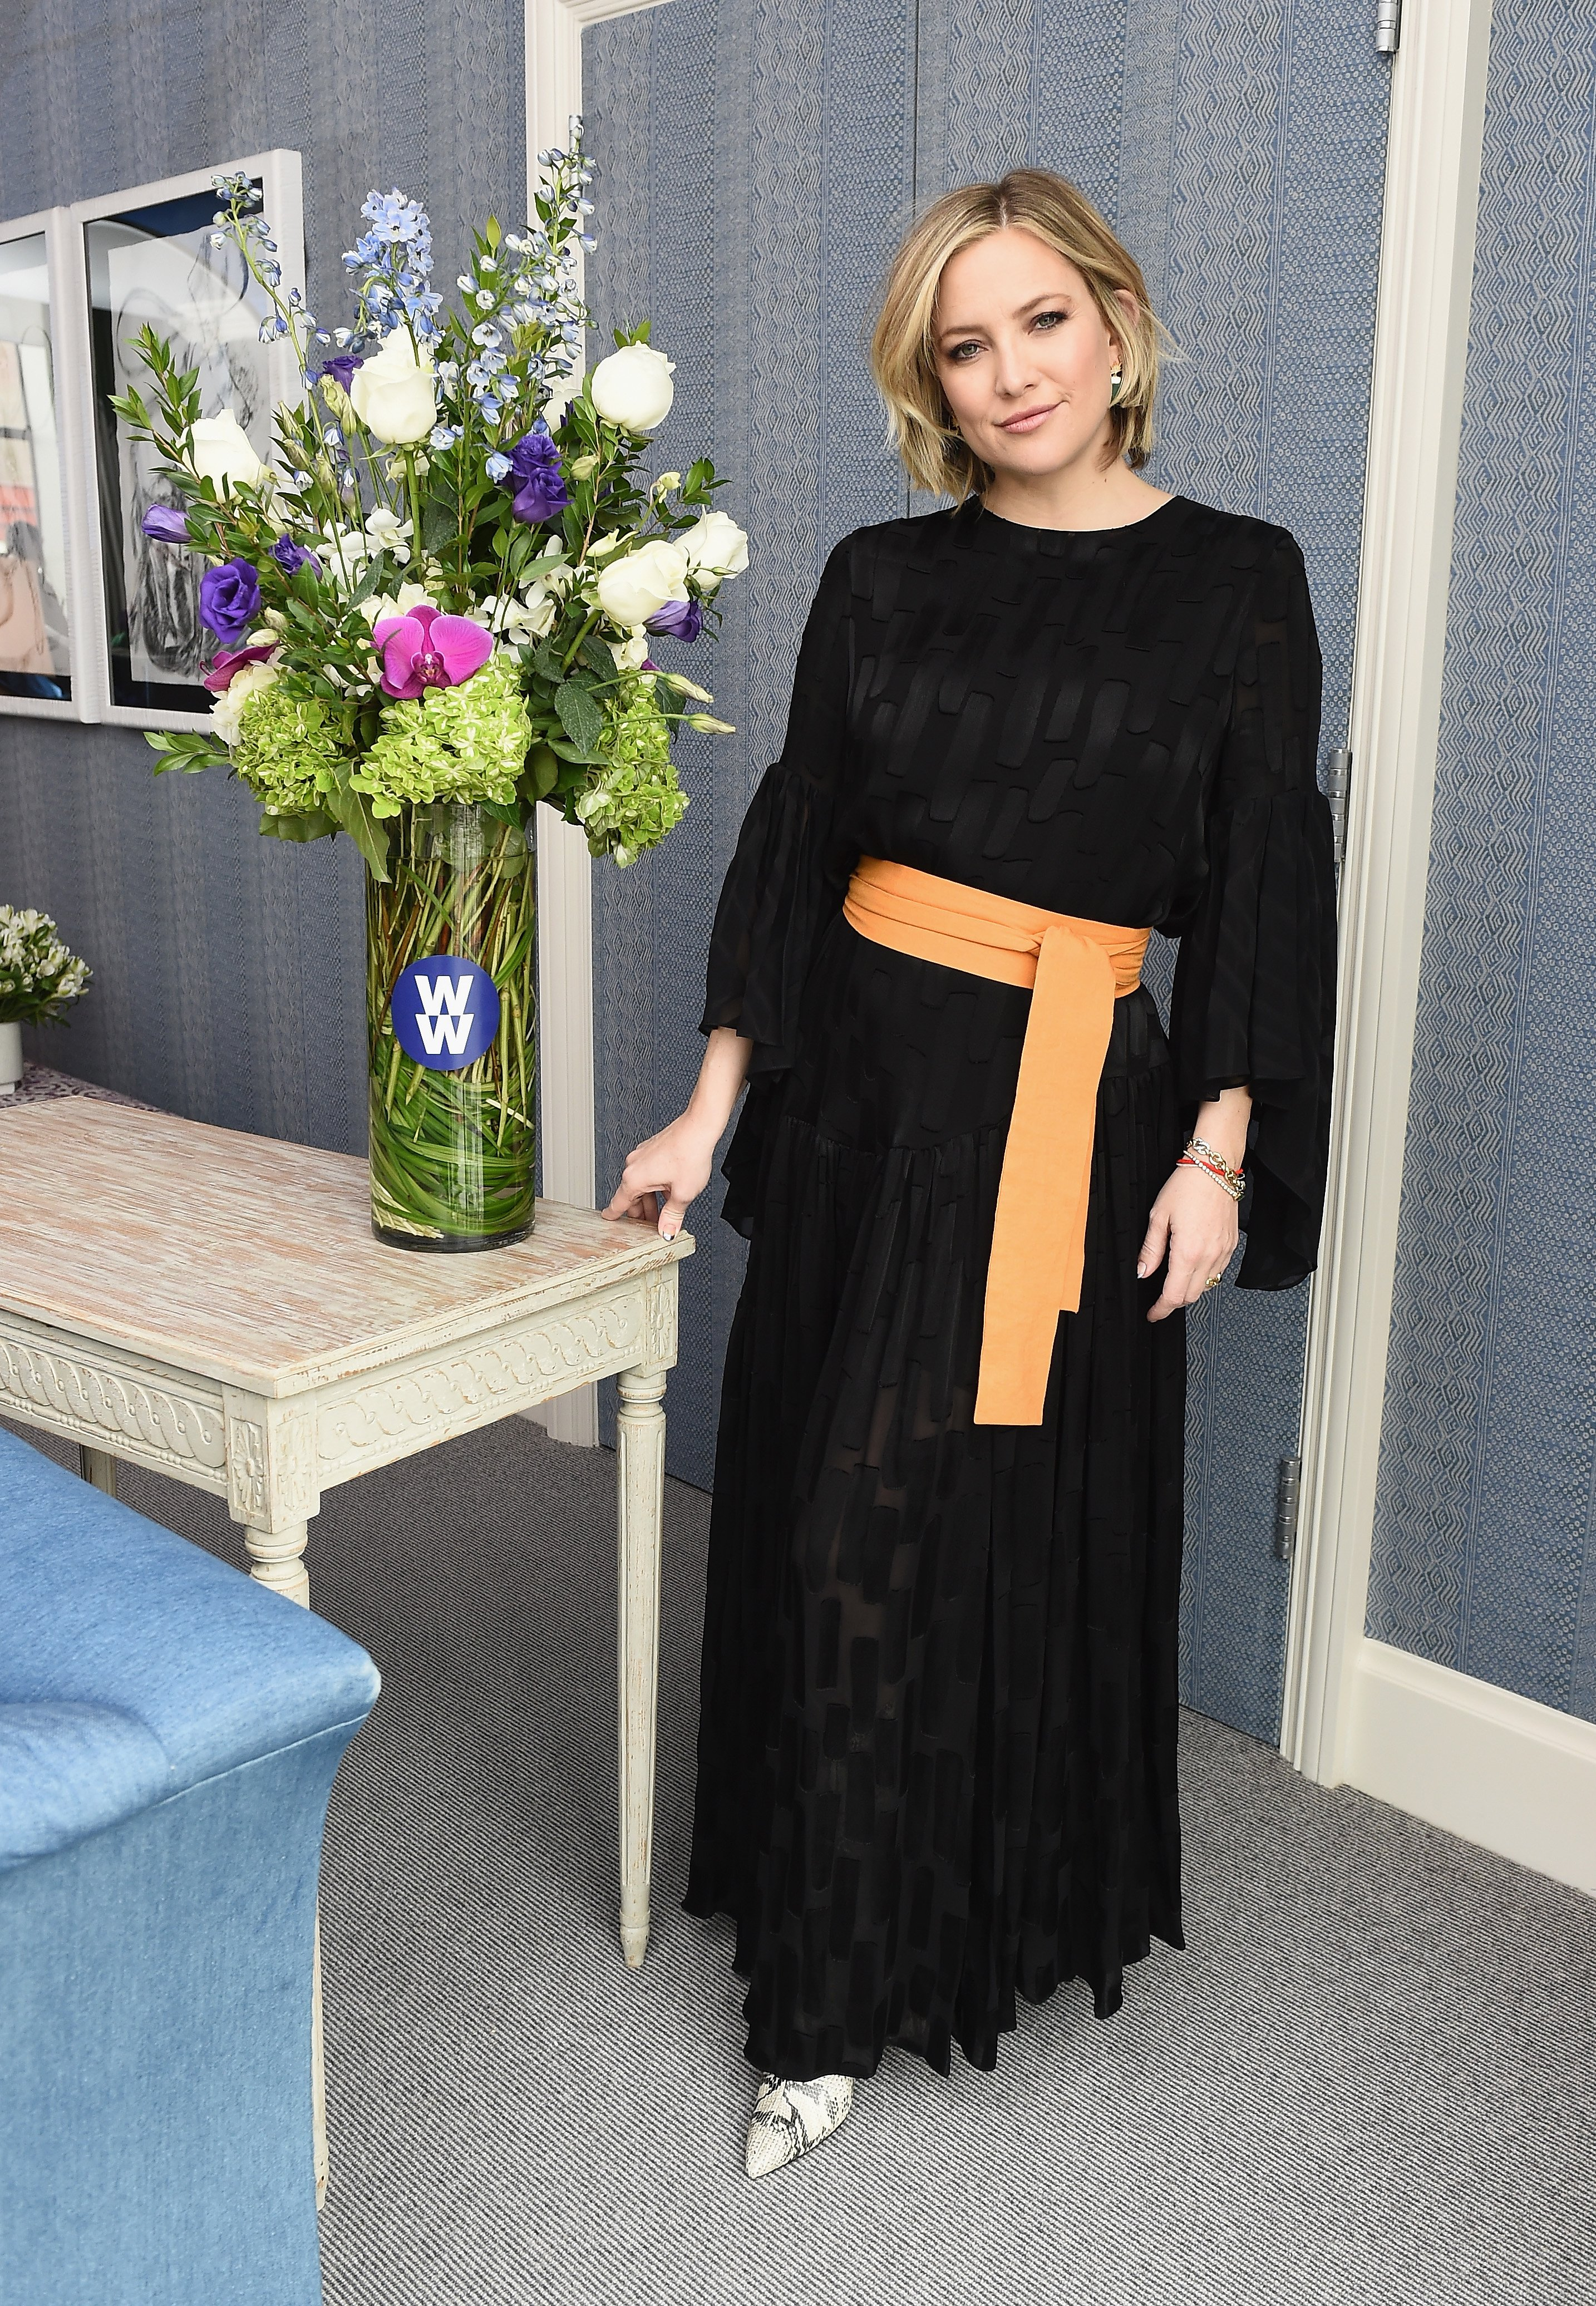 Kate Hudson talks about wellness, family and finding balance on January 10, 2019 in New York City | Photo: Getty Images